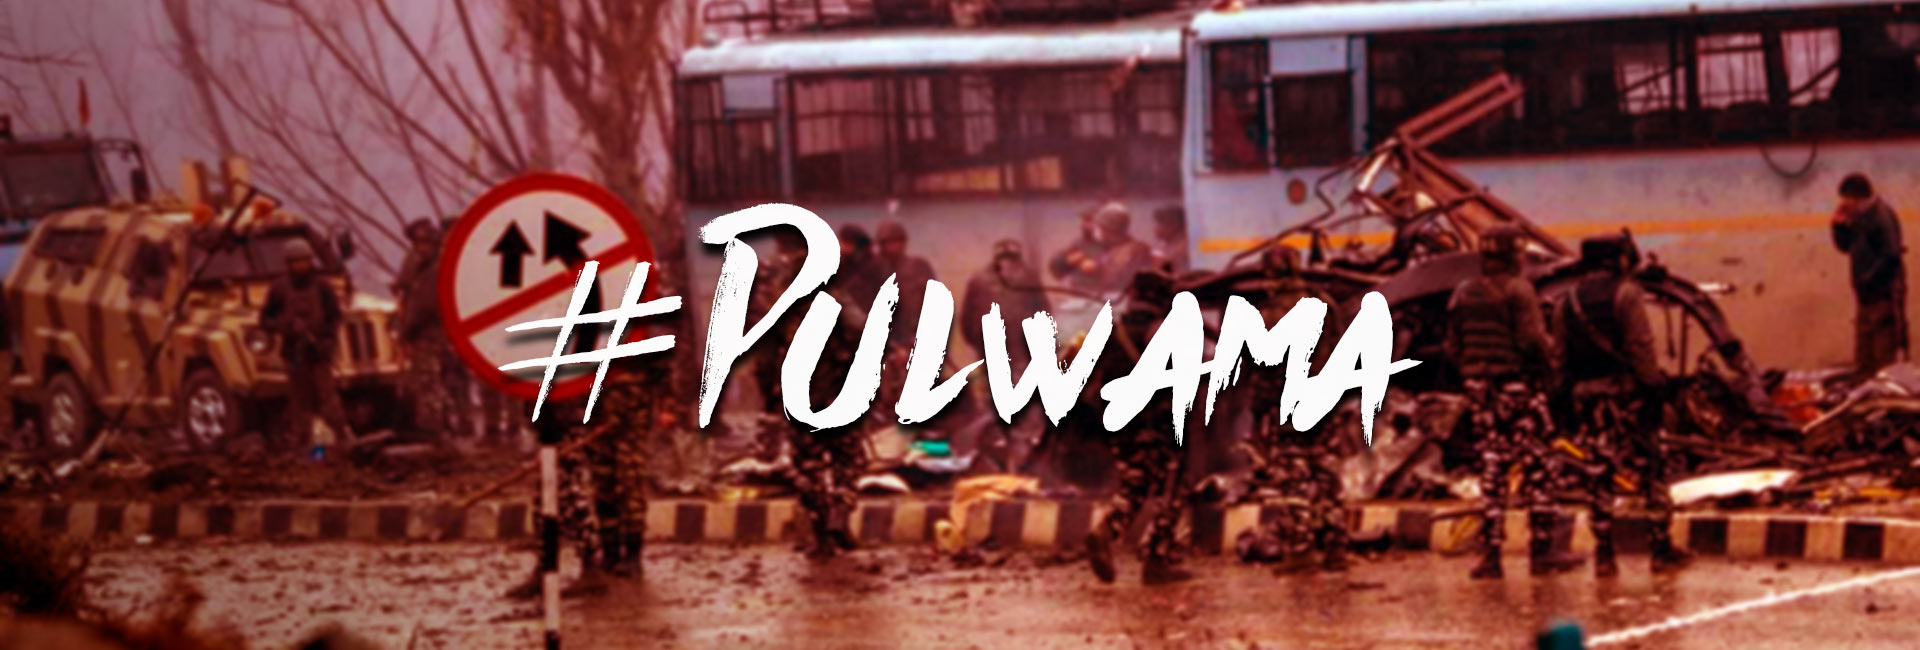 #Pulwama: Will This Be A Repeated Timeline?